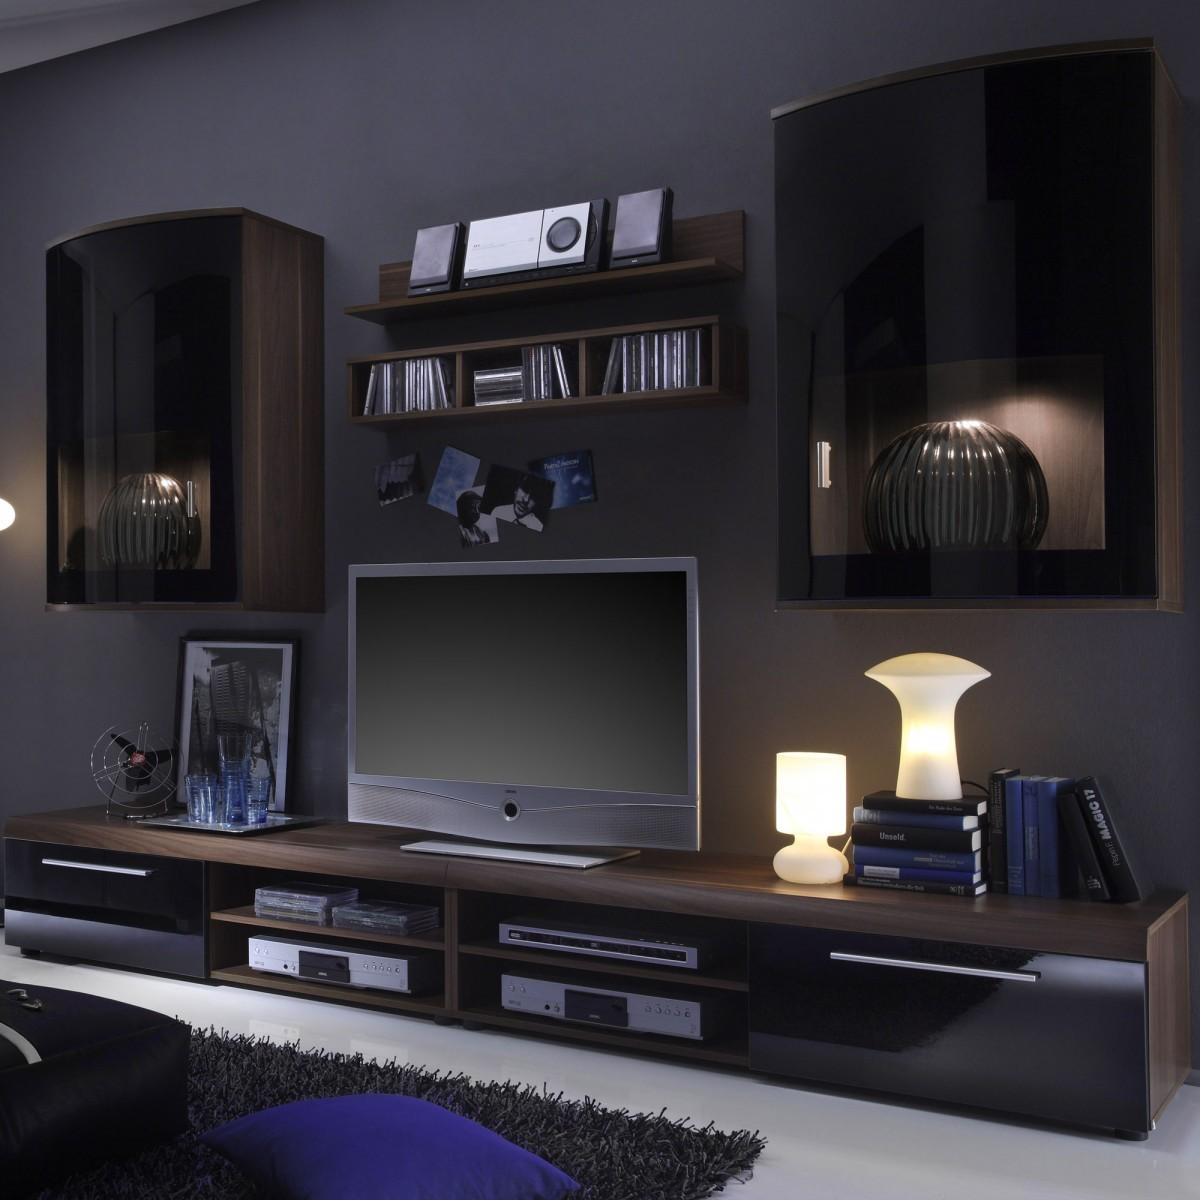 cremona m bel wildeiche interessante ideen. Black Bedroom Furniture Sets. Home Design Ideas